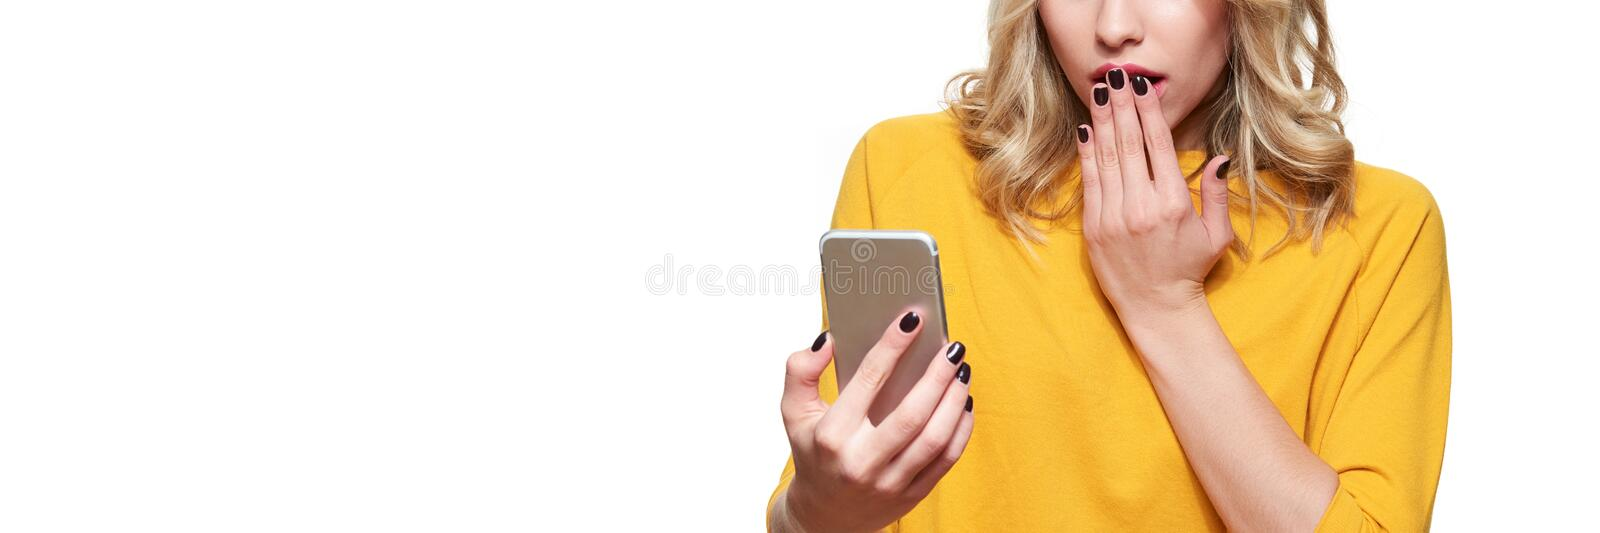 Shocked young woman holding up her mobile phone, reading shocking news. Woman in disbelief, isolated over white. Shocked young woman holding up her mobile phone stock photo